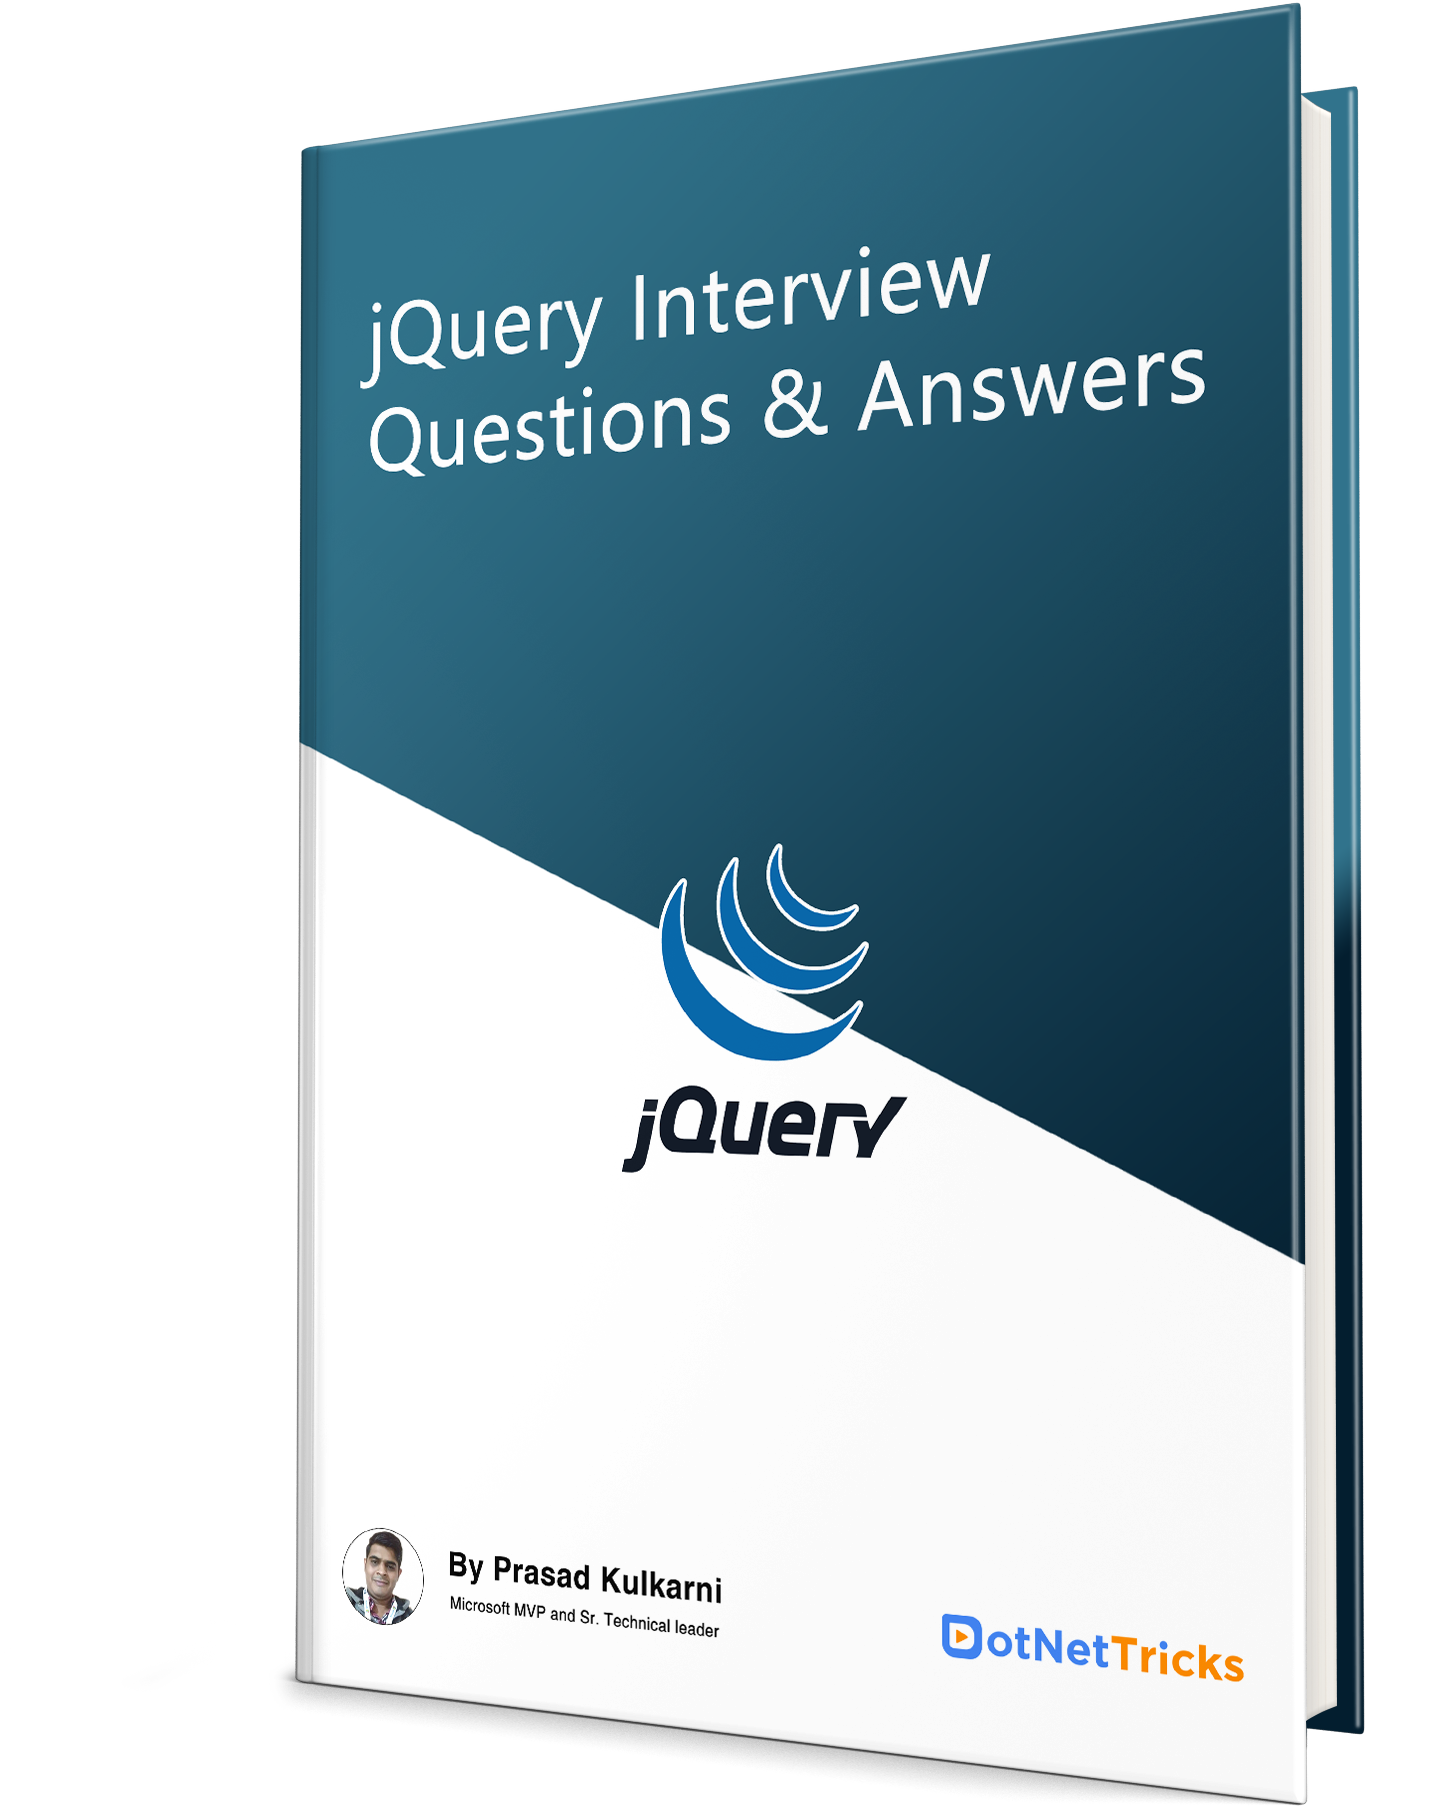 Jquery Questions And Answers Pdf In 2020 Interview Questions This Or That Questions Interview Questions And Answers